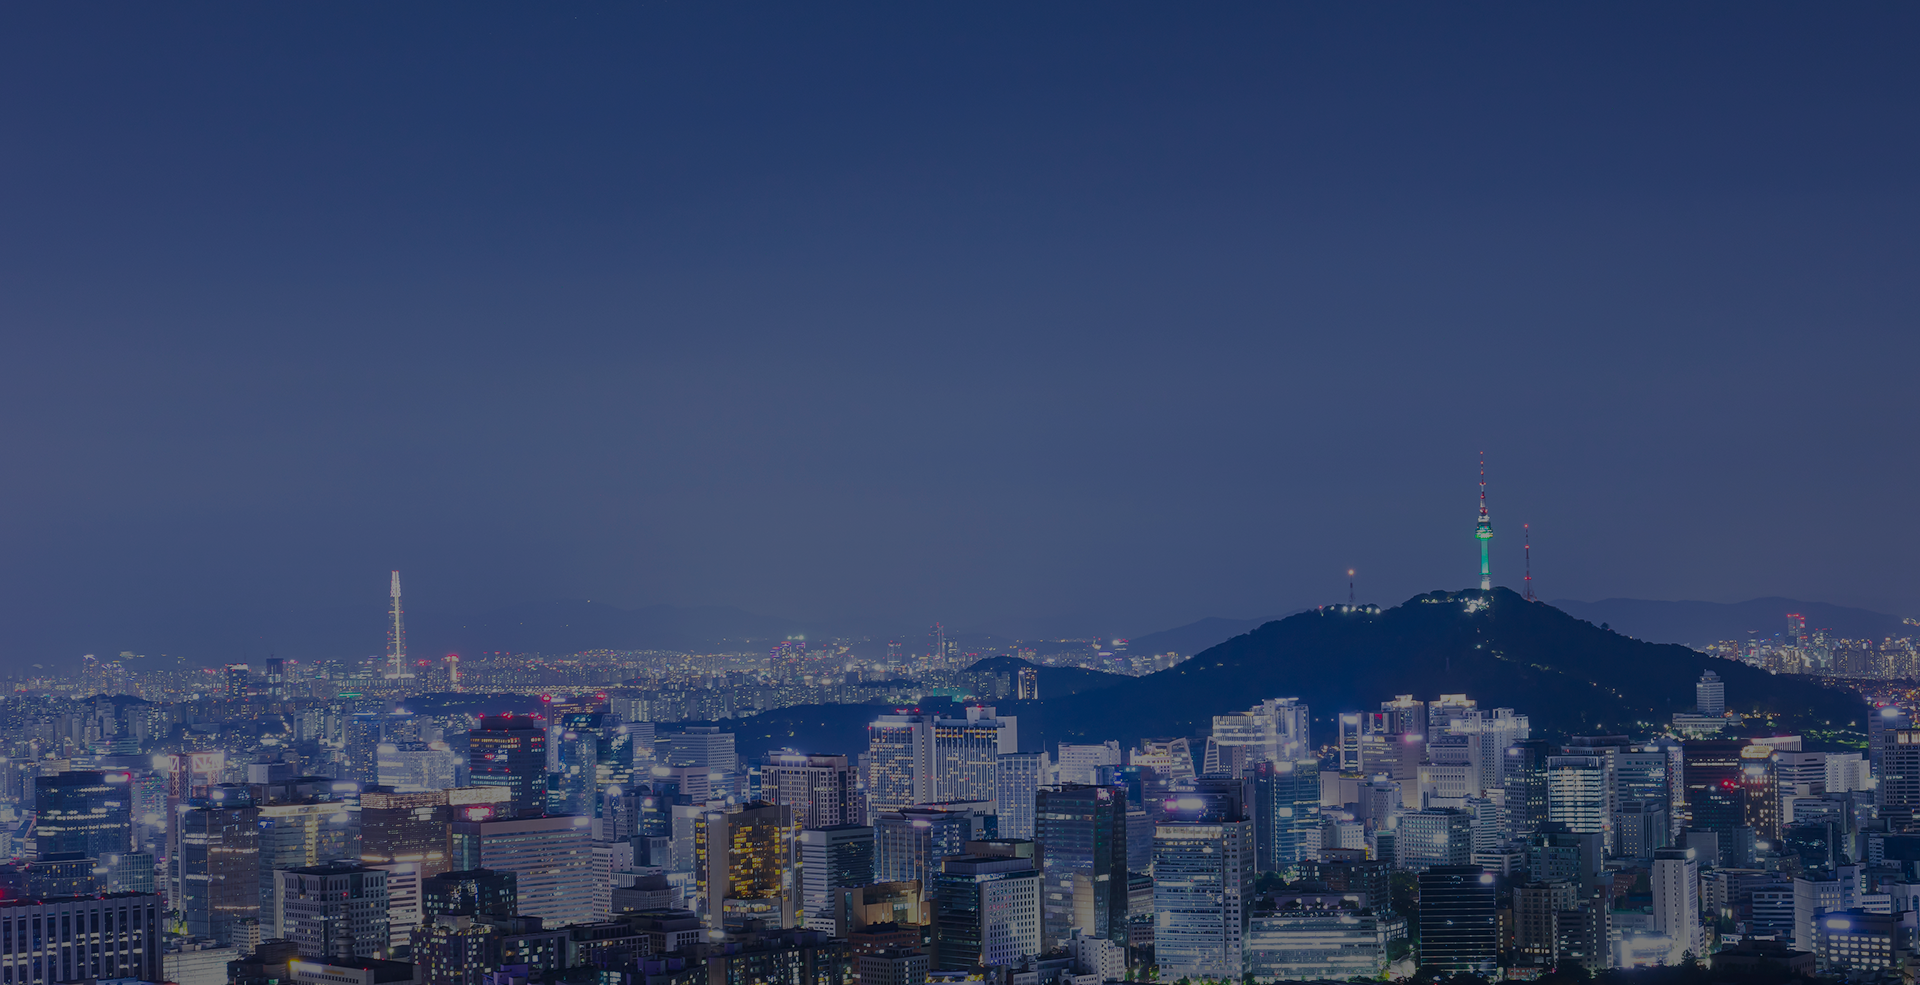 Seoul City Night View